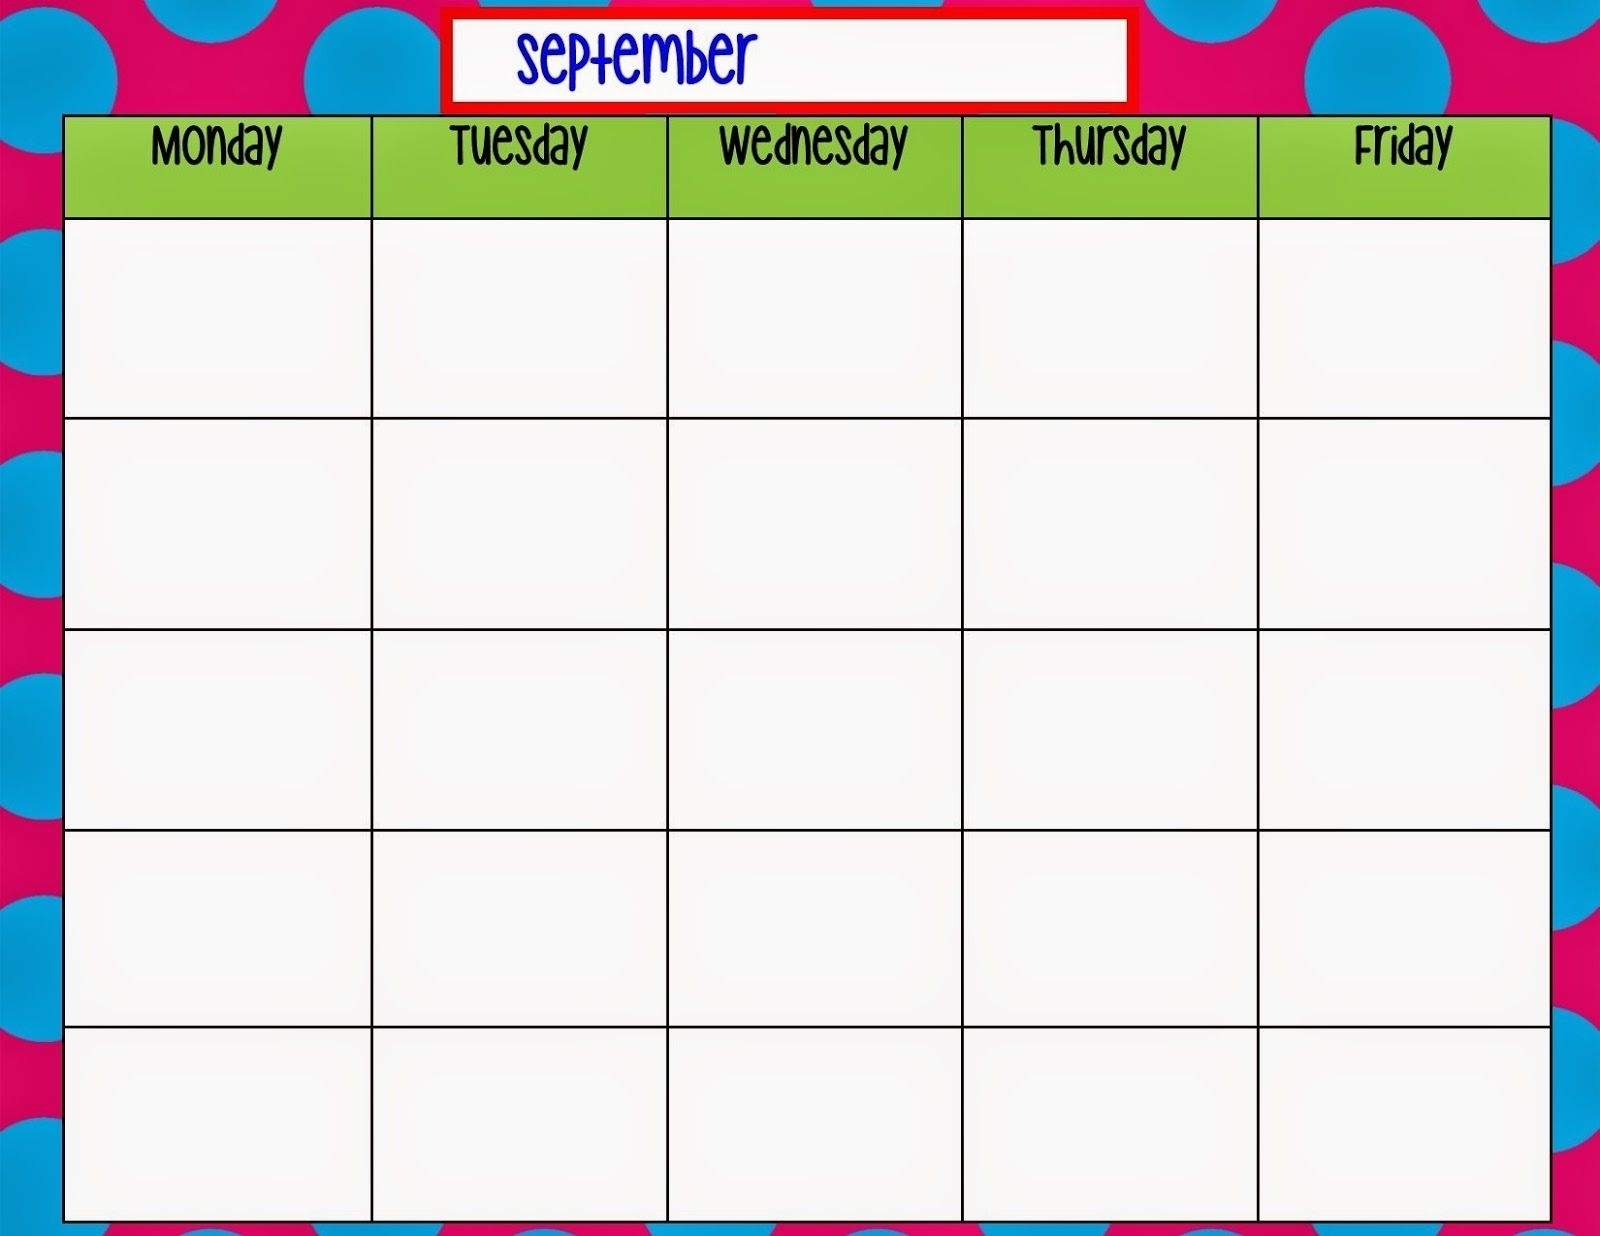 Free Printable Weekly Calendar Monday To Friday | Template Calendar inside Free Printable Calendar Monday Through Friday With Notes